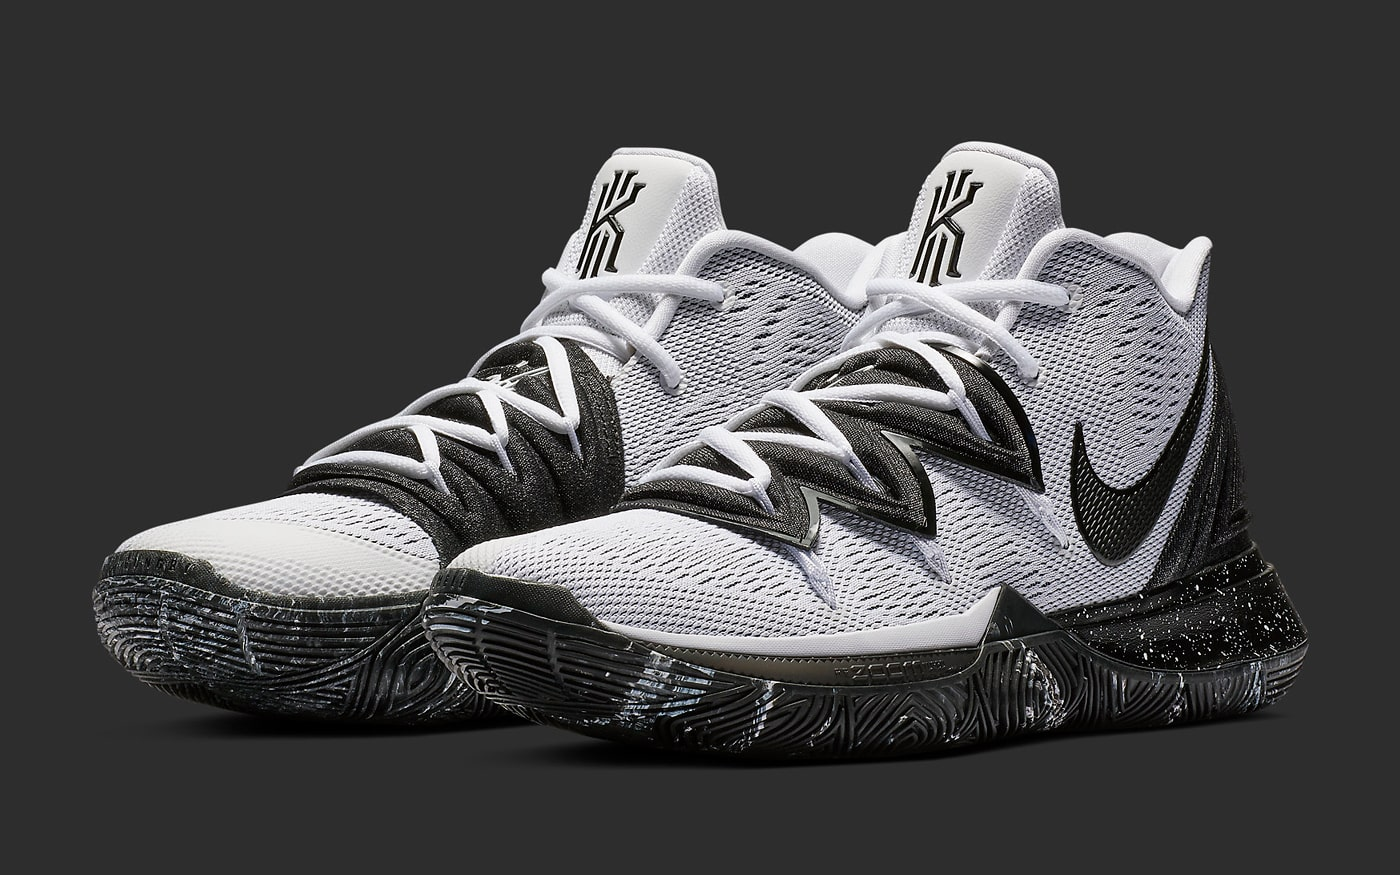 """0025a0feef04 The Nike Kyrie 5 """"Cookies and Cream"""" Releases Next Week! - HOUSE OF ..."""